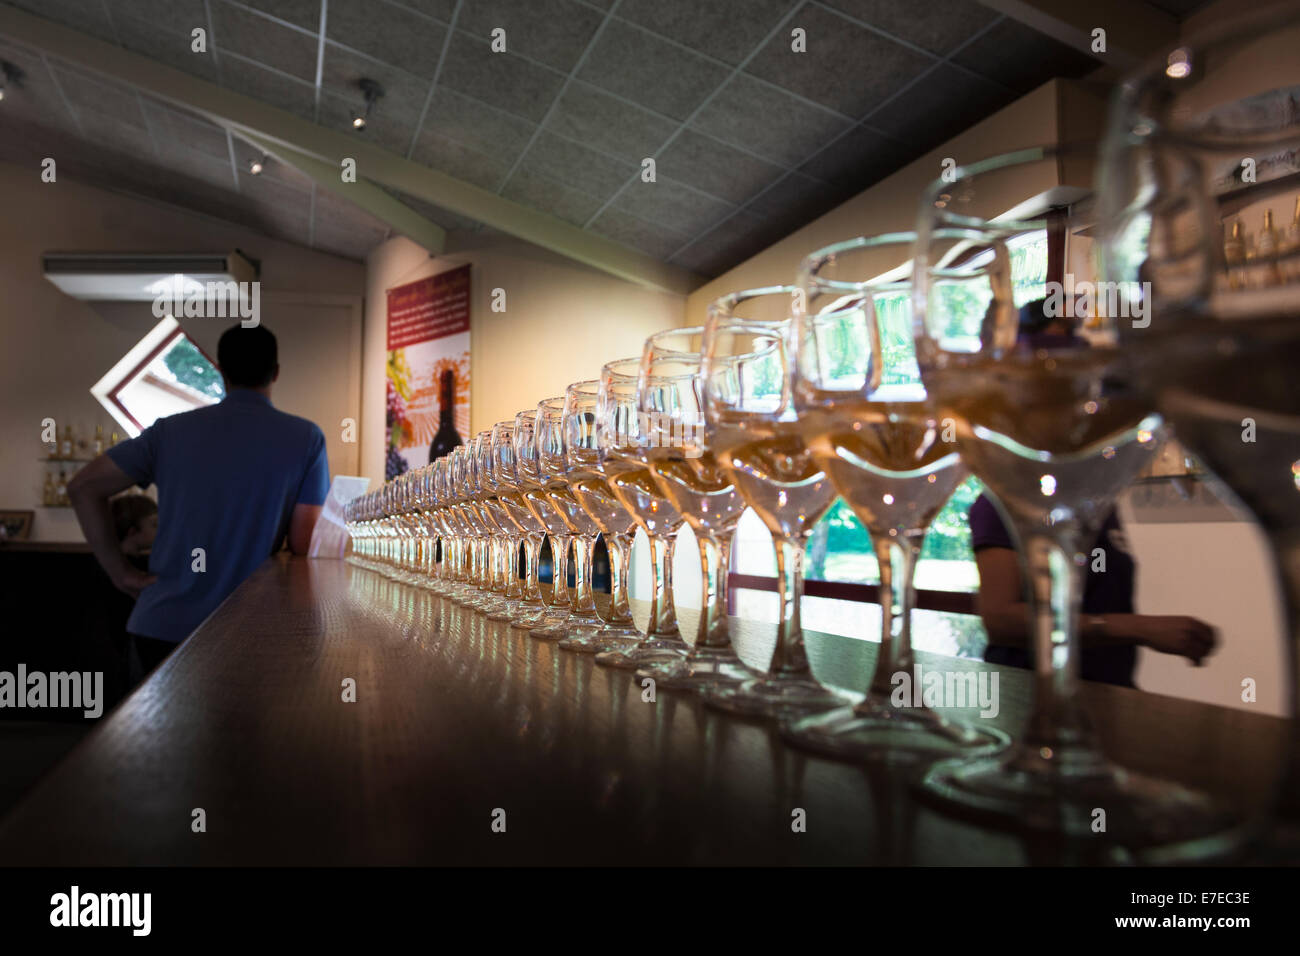 Glasses lined up for wine tasting at Chateau de Monbazillac France - Stock Image